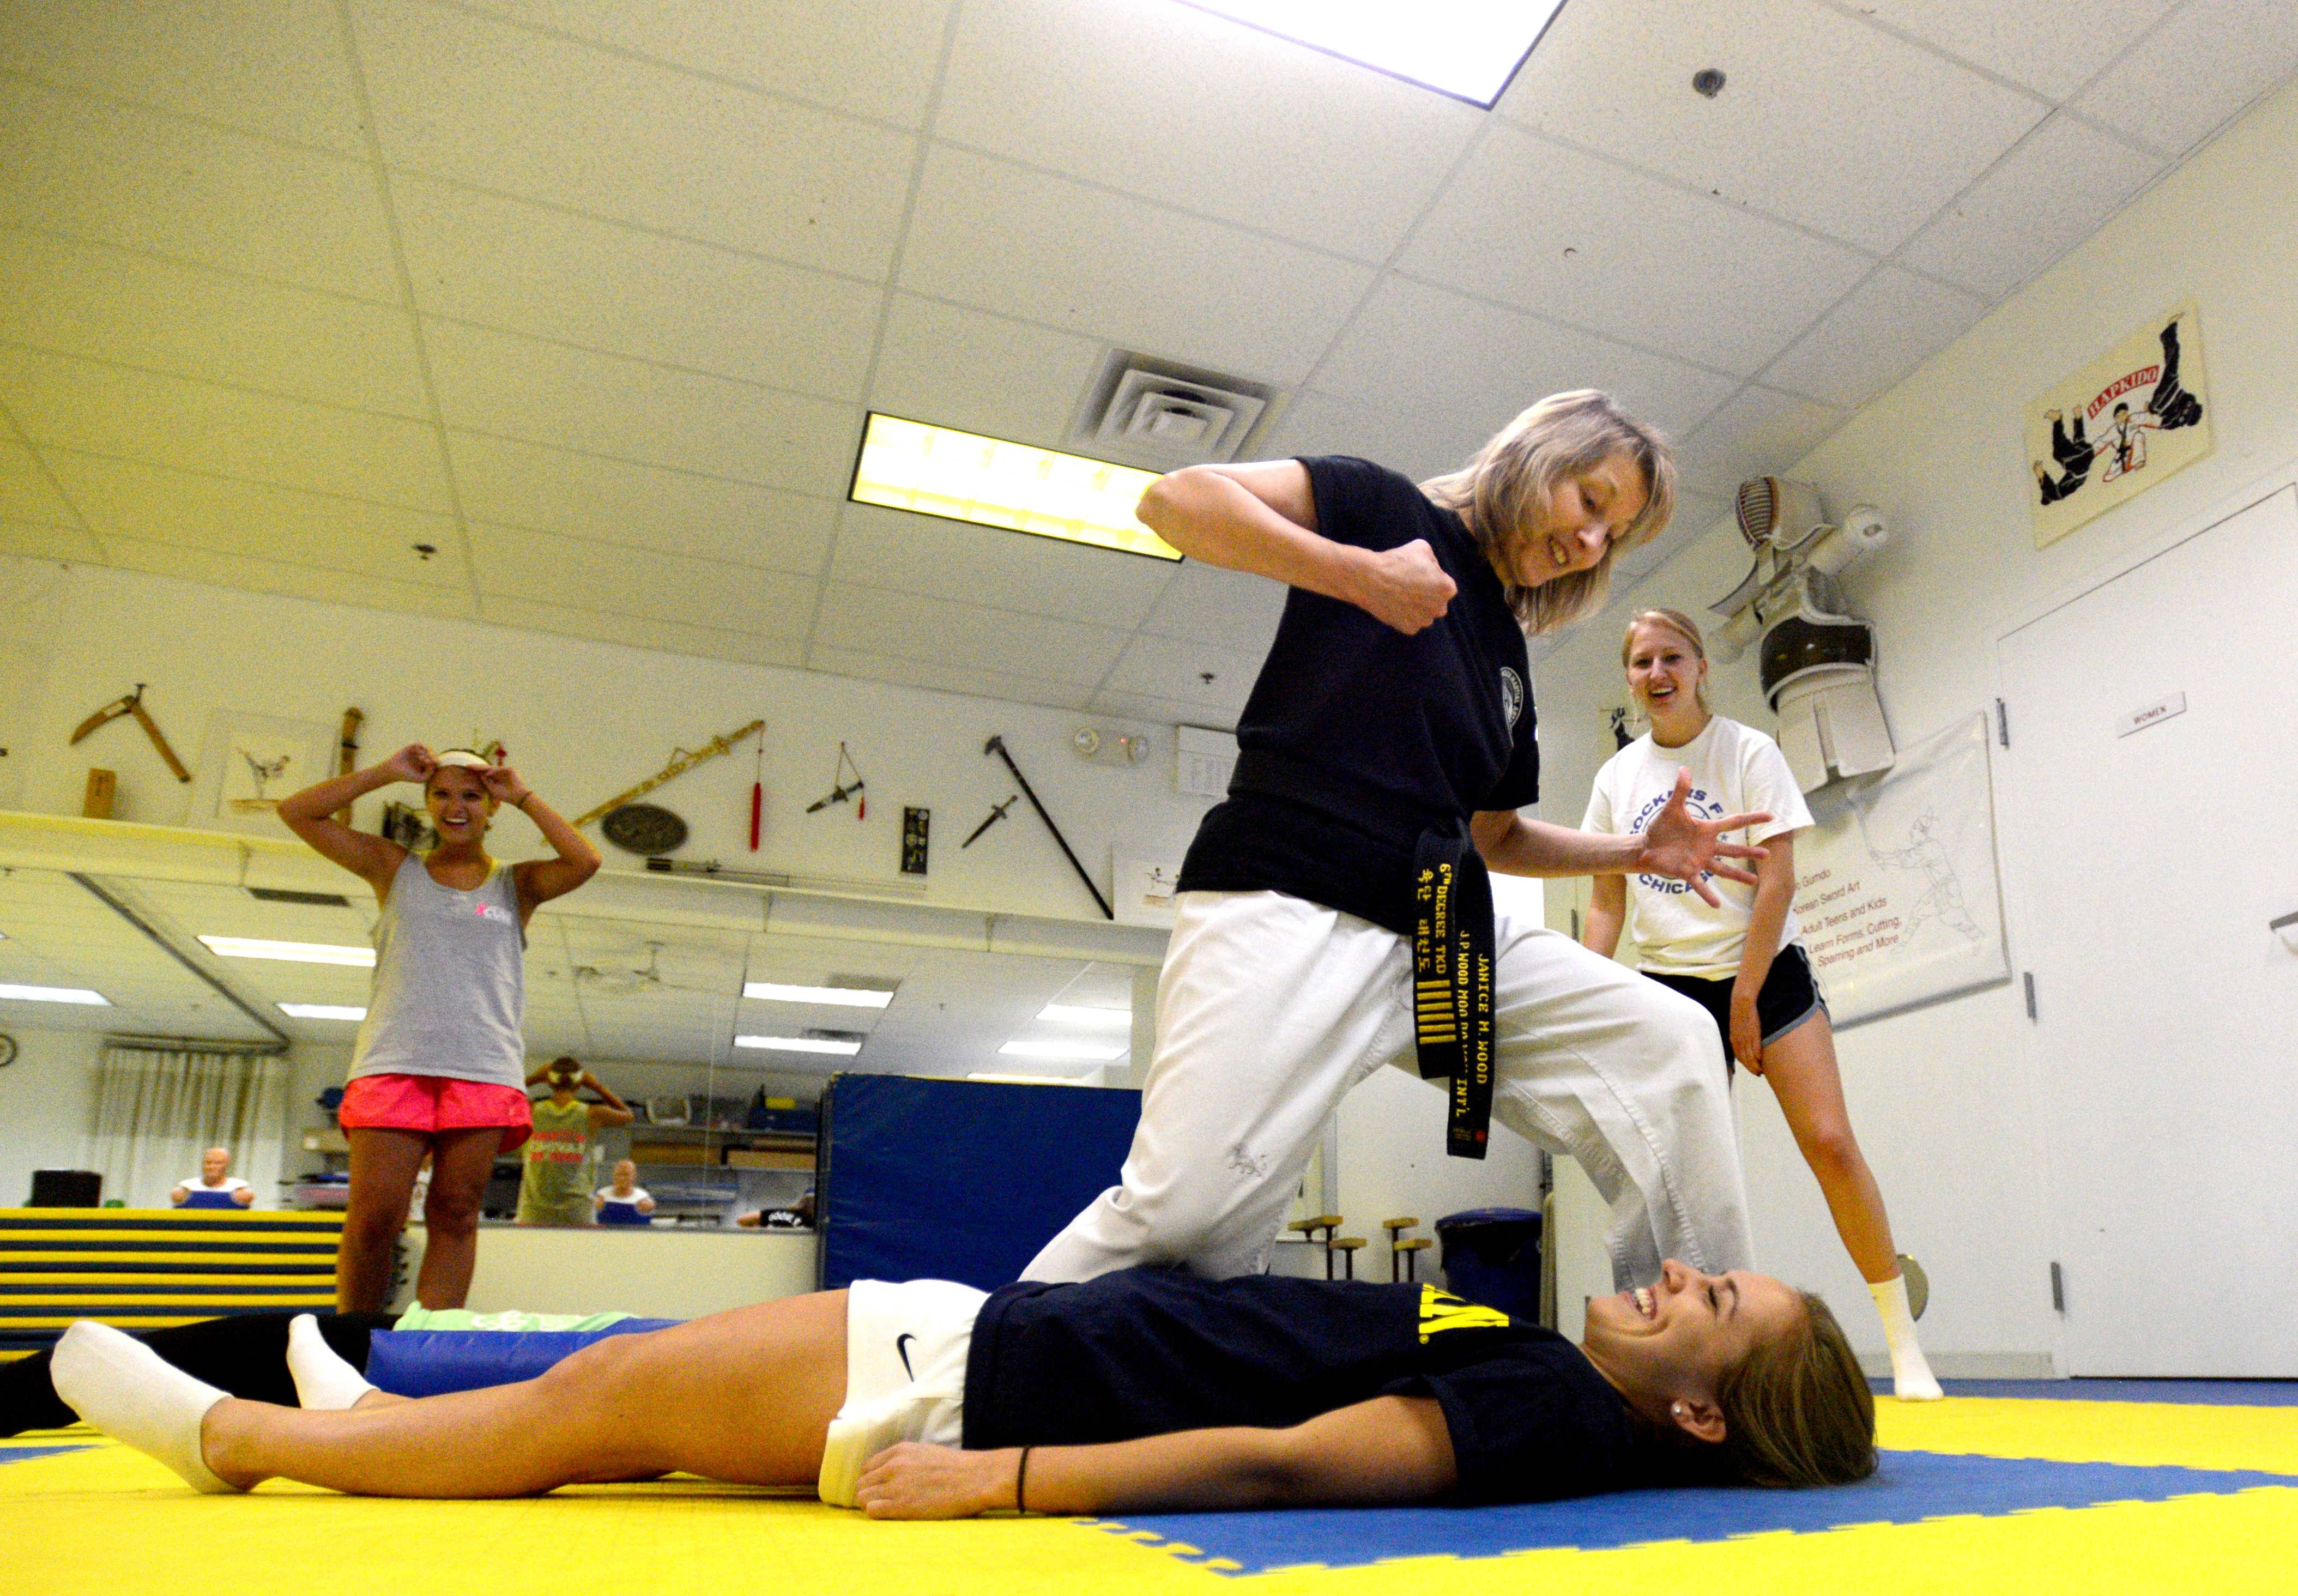 Instructor Jan Wood shows her might over Tracy Bourgon of Palatine during a women's self-defense class.